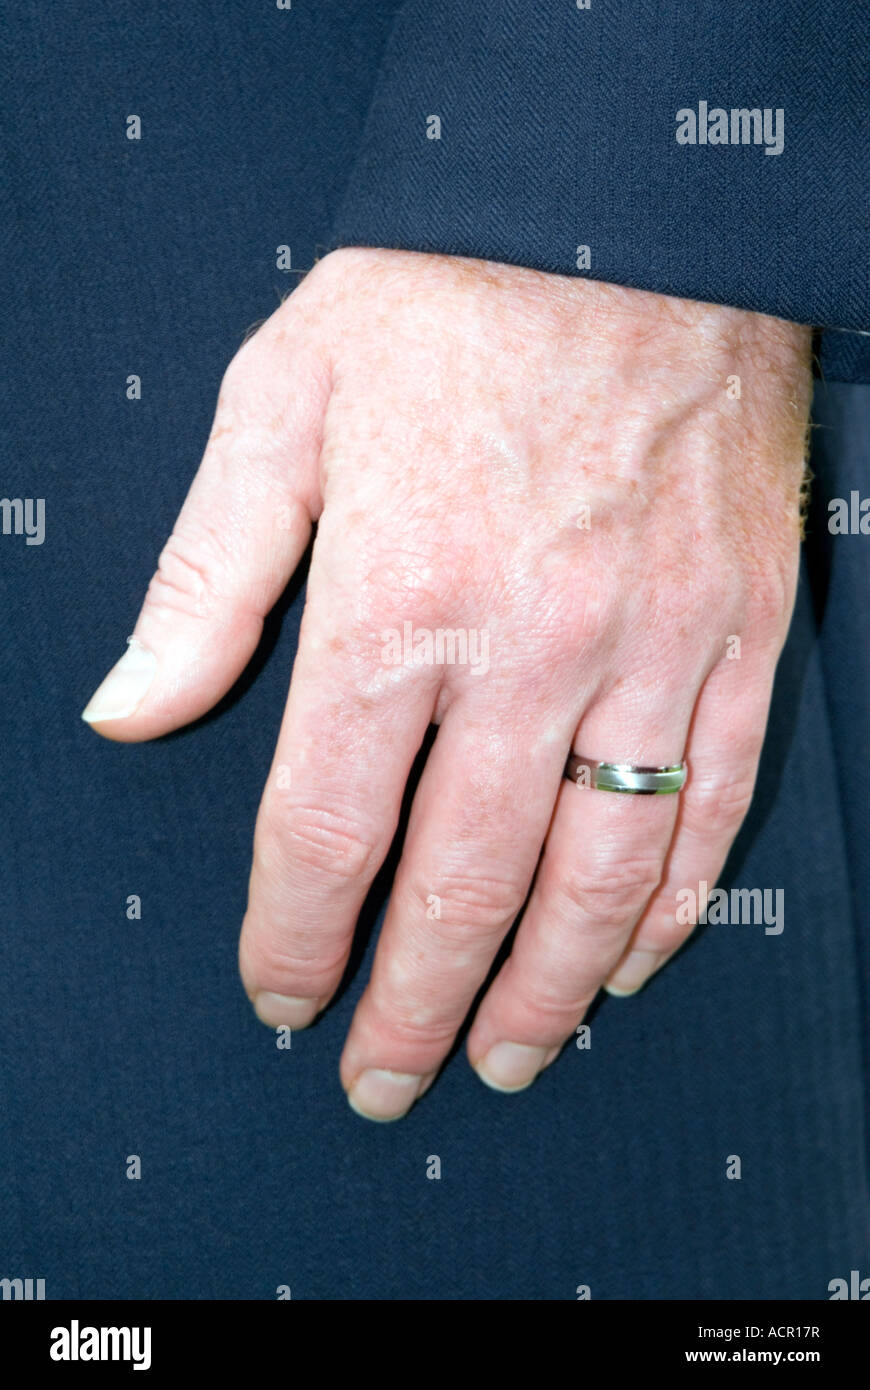 Wedding ring on a mans finger Stock Photo: 13212394 - Alamy